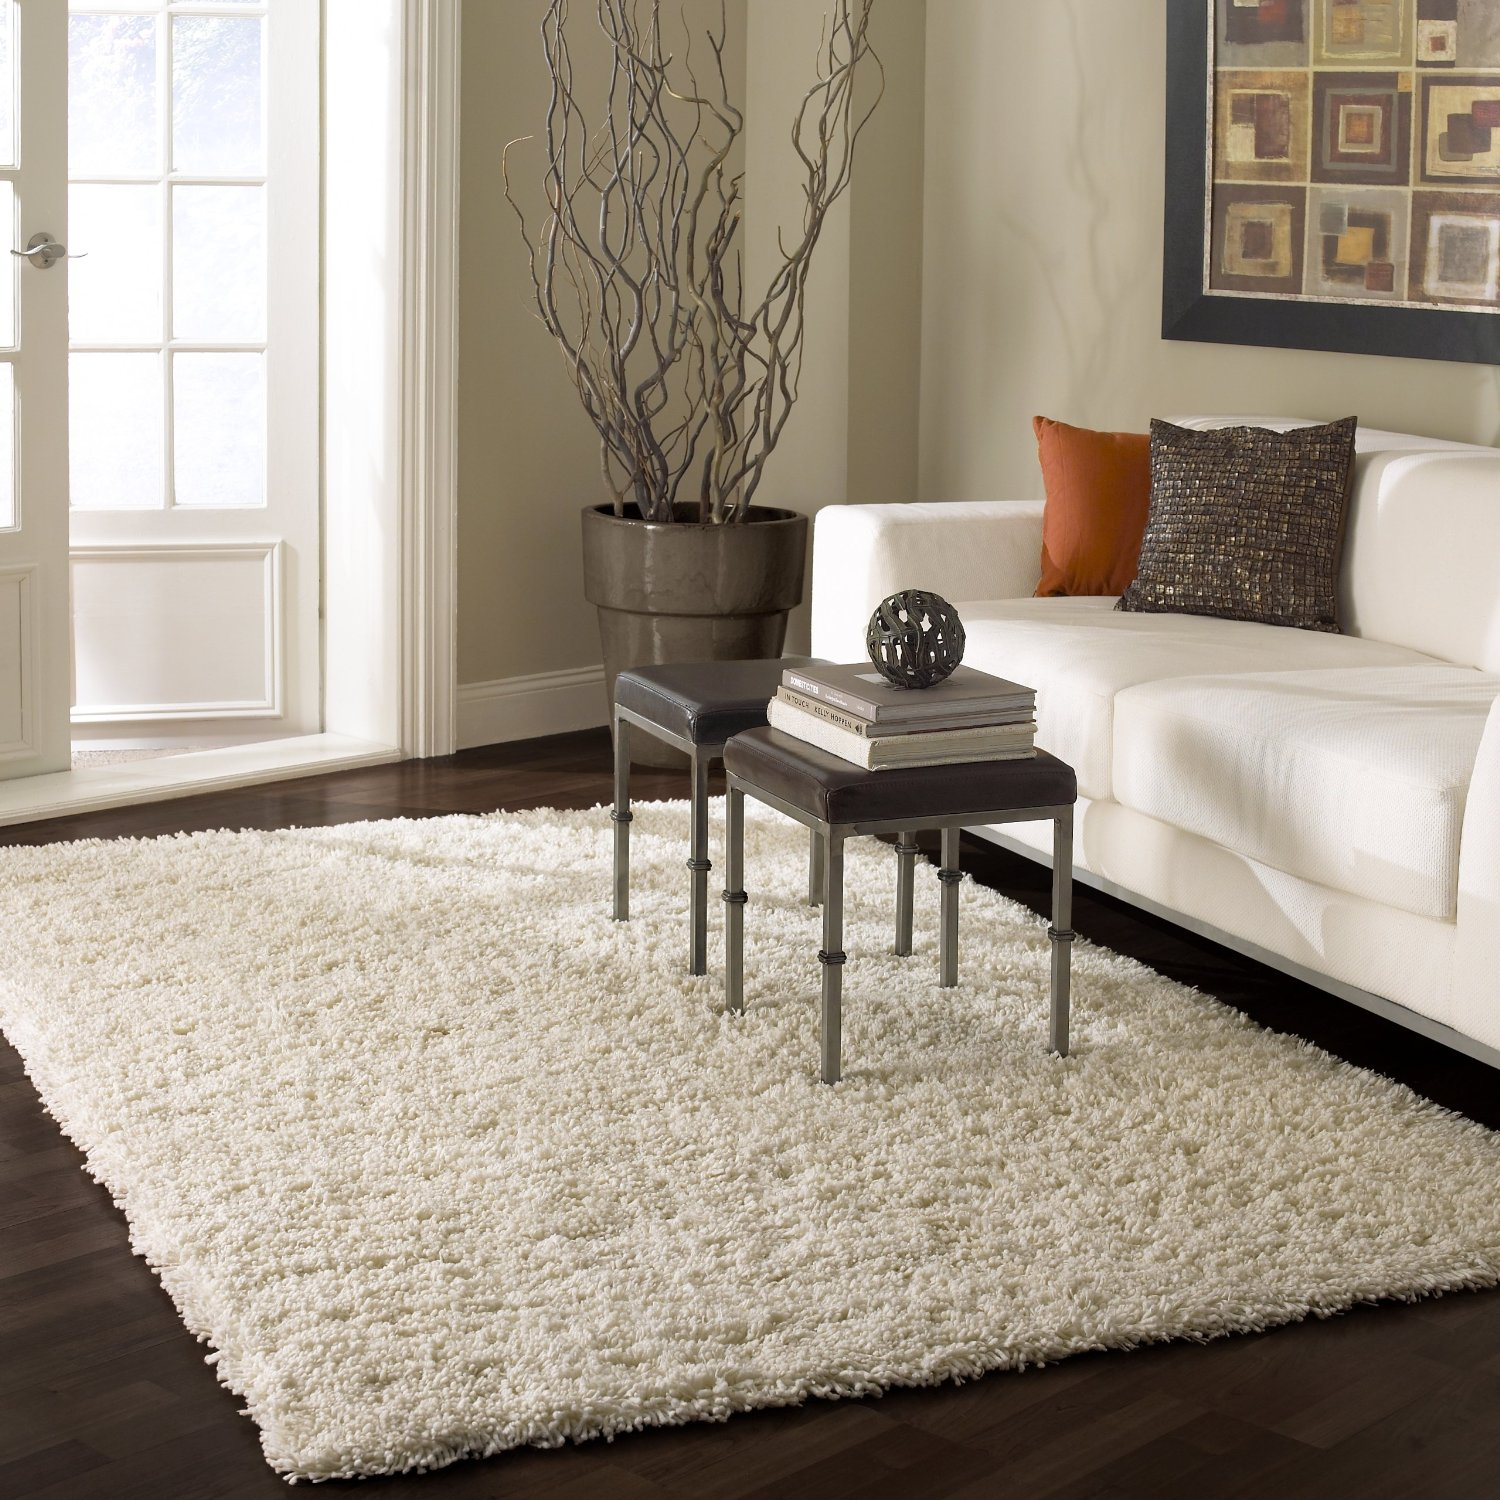 Beautiful living room rug minimalist ideas midcityeast Carpet for living room